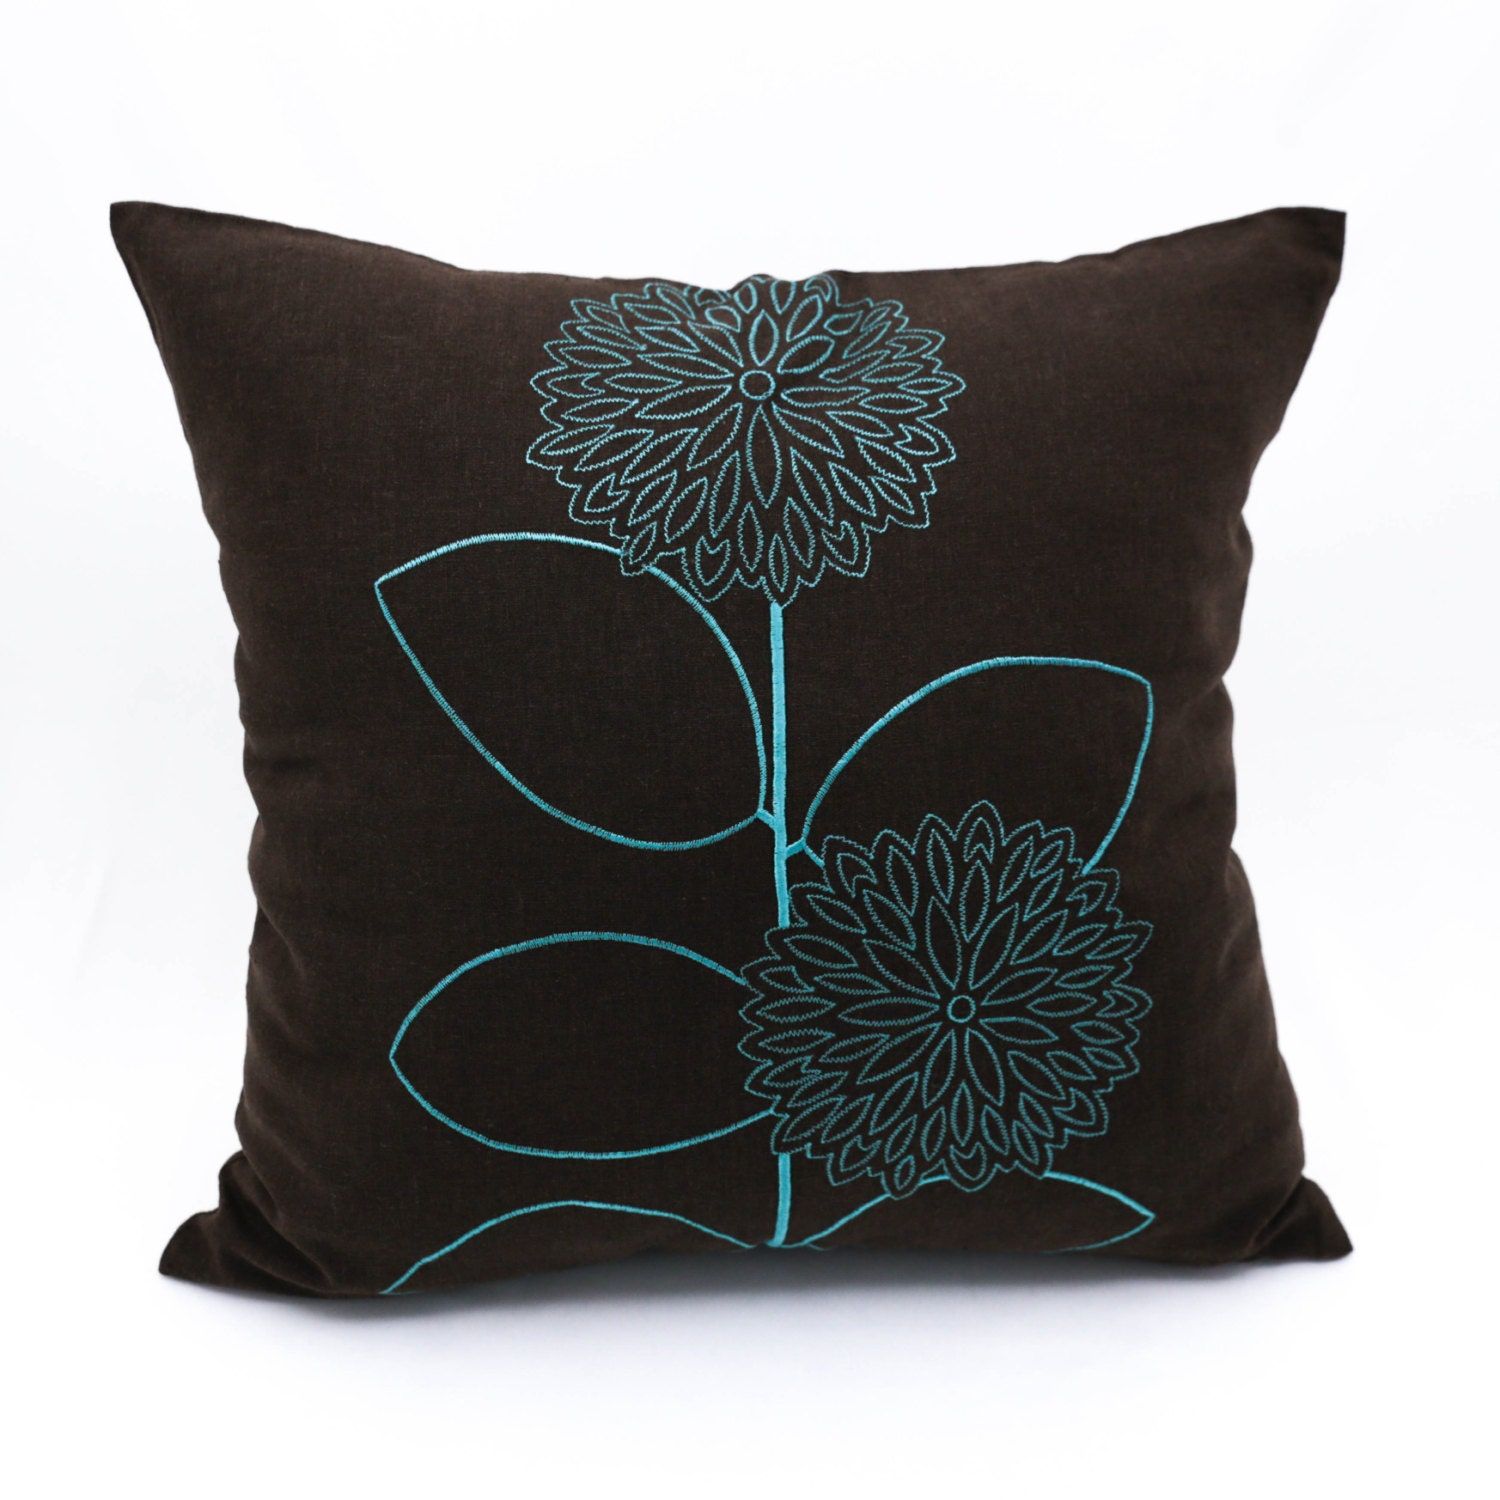 Dark Brown Throw Pillow : Teal Throw Pillow Cover Dark Brown Linen Pillow Floral